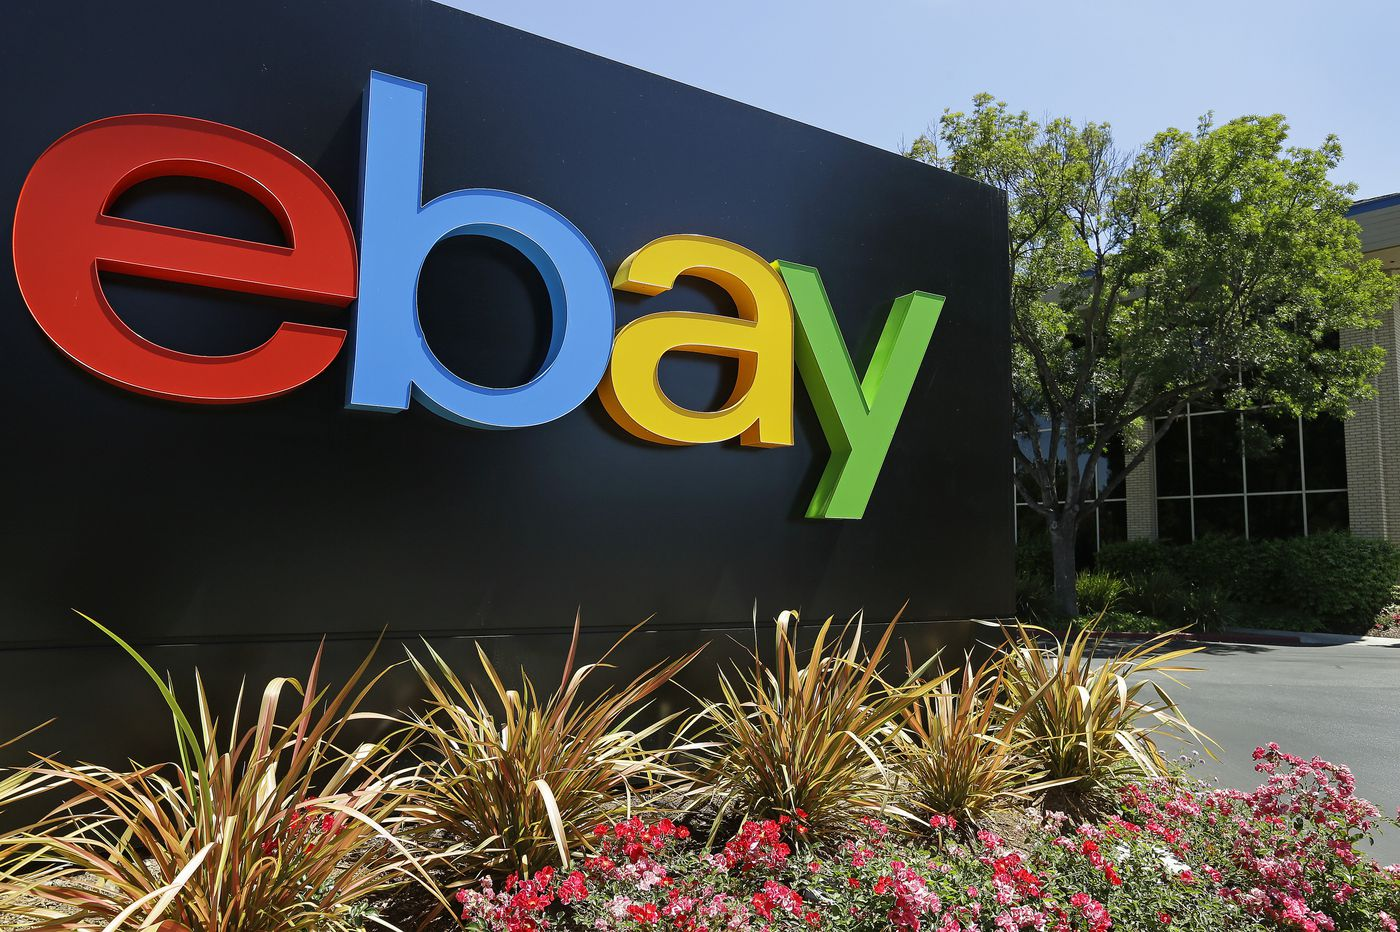 Coatesville man who defrauded eBay out of $320,000 sentenced to one day in prison